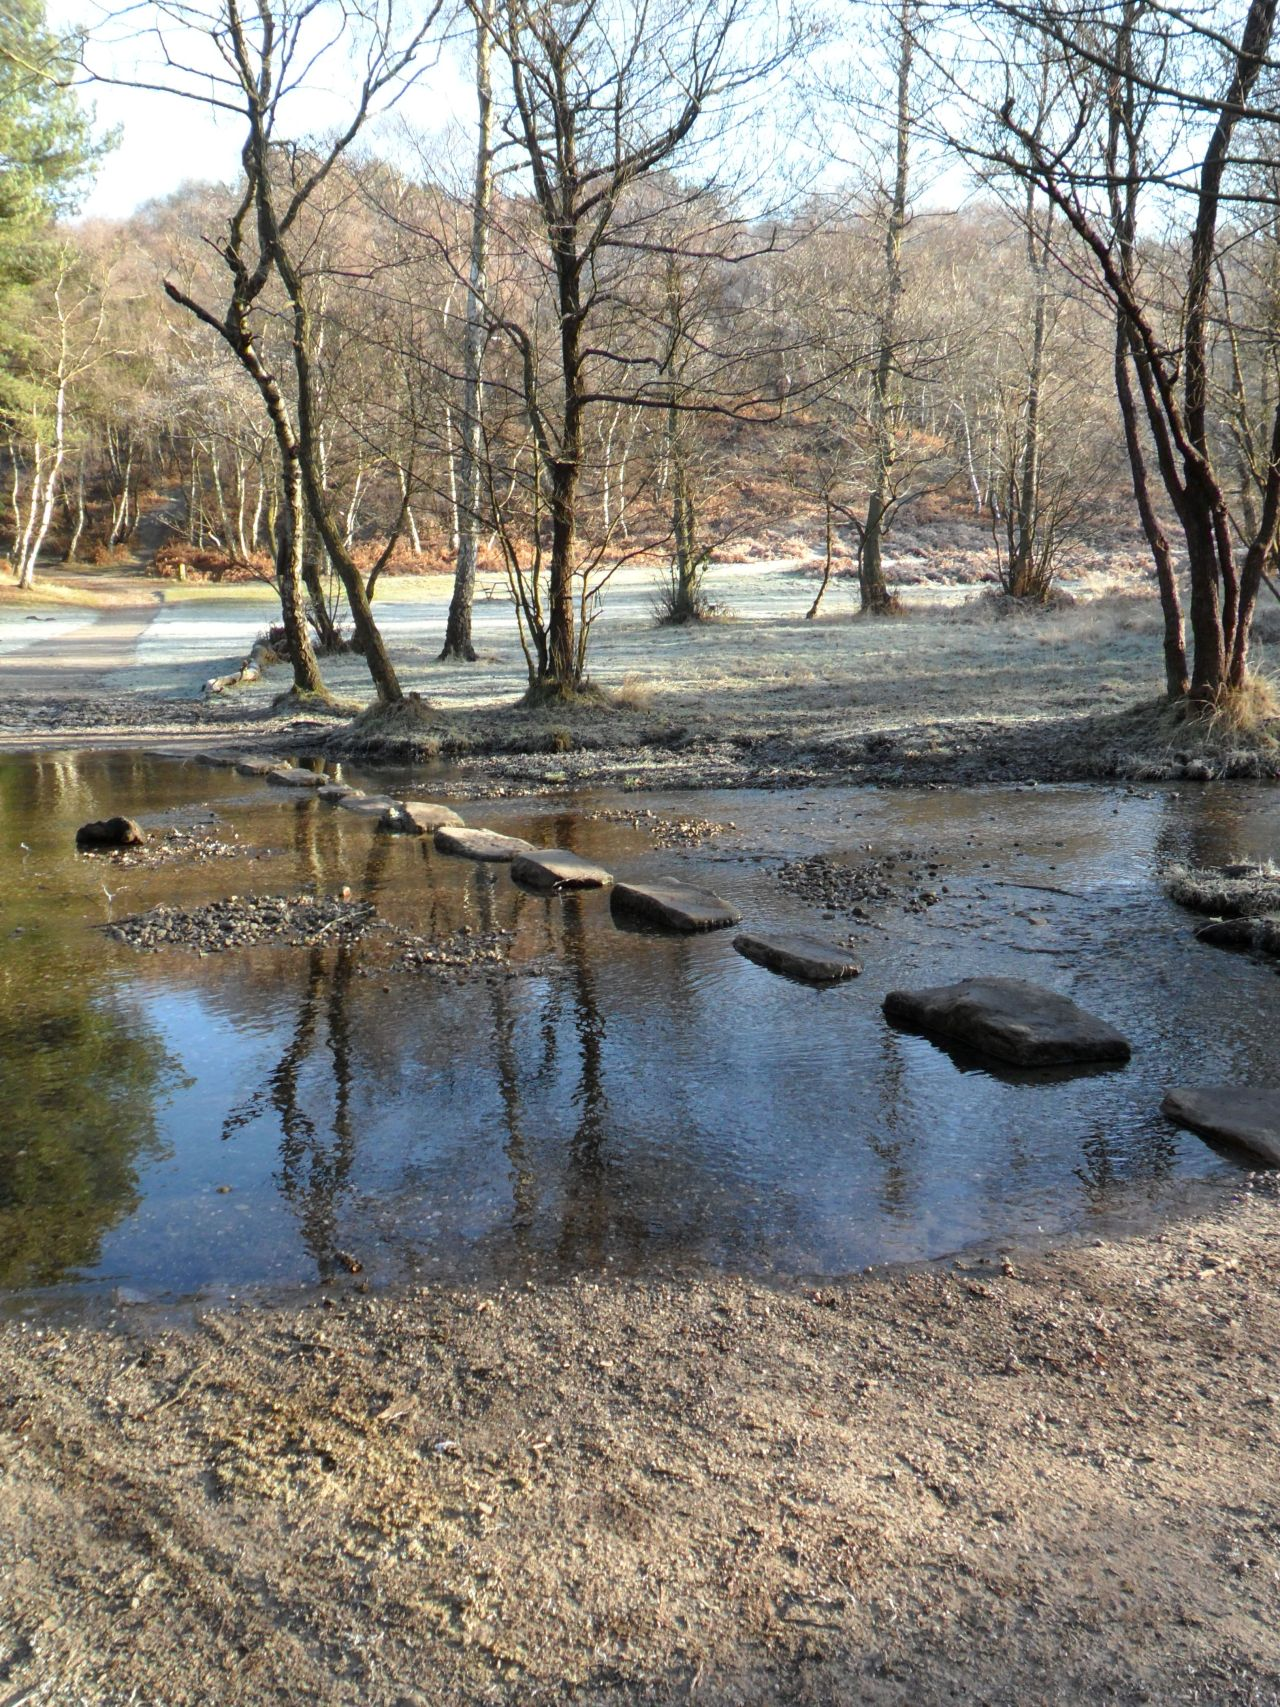 Stepping Stones on a frosty morning at Cannock Chase, Staffordshire, England.